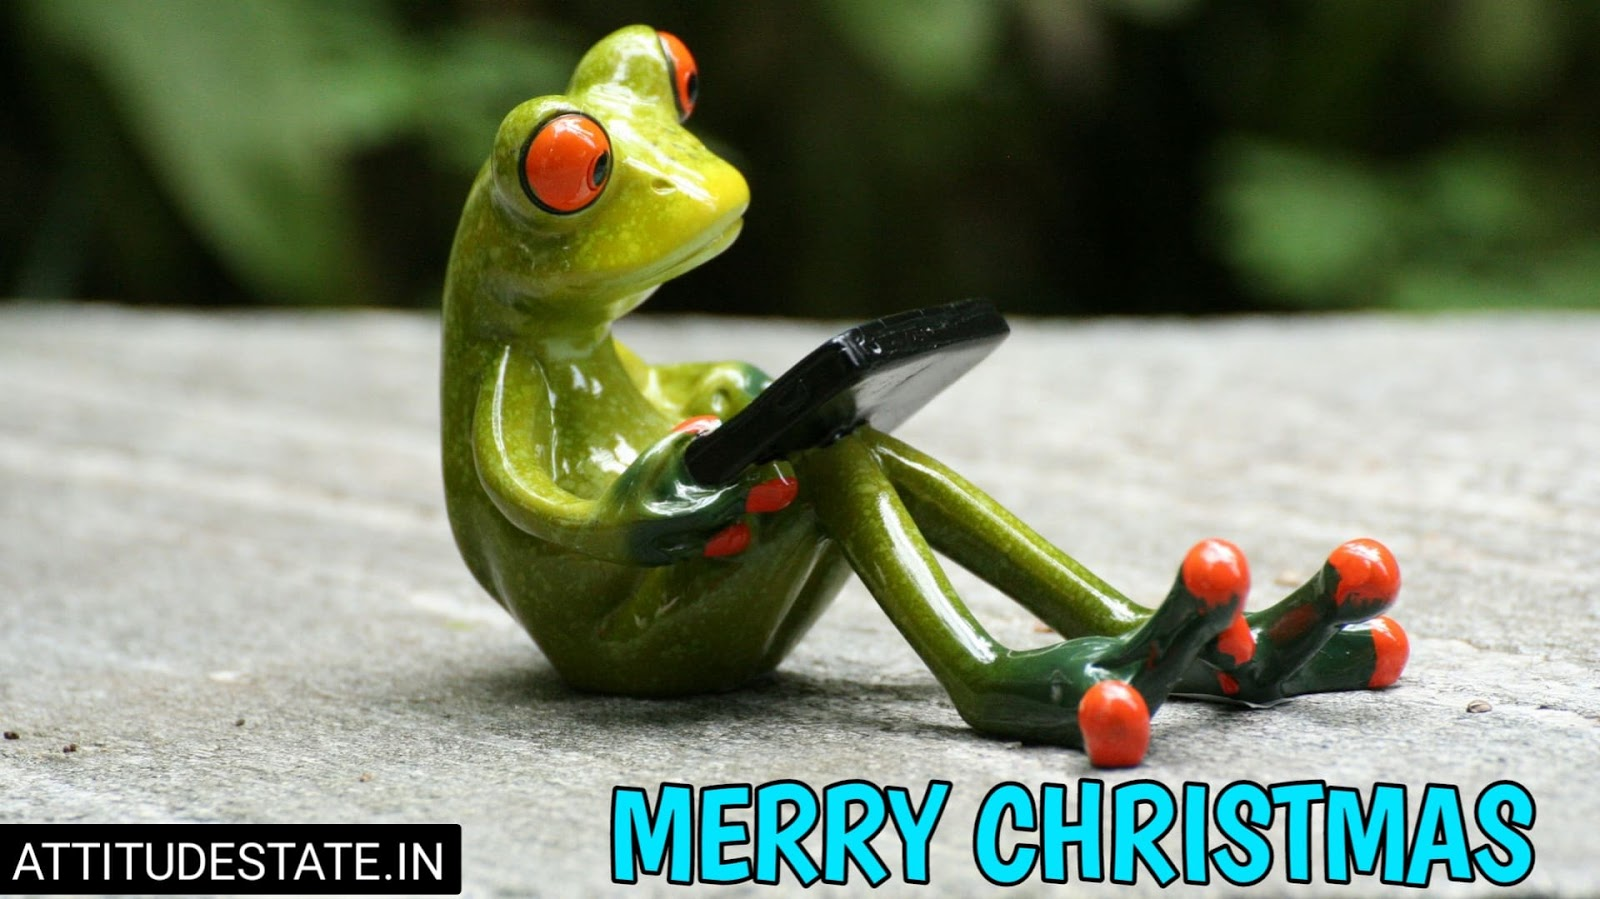 funny images of merry christmas